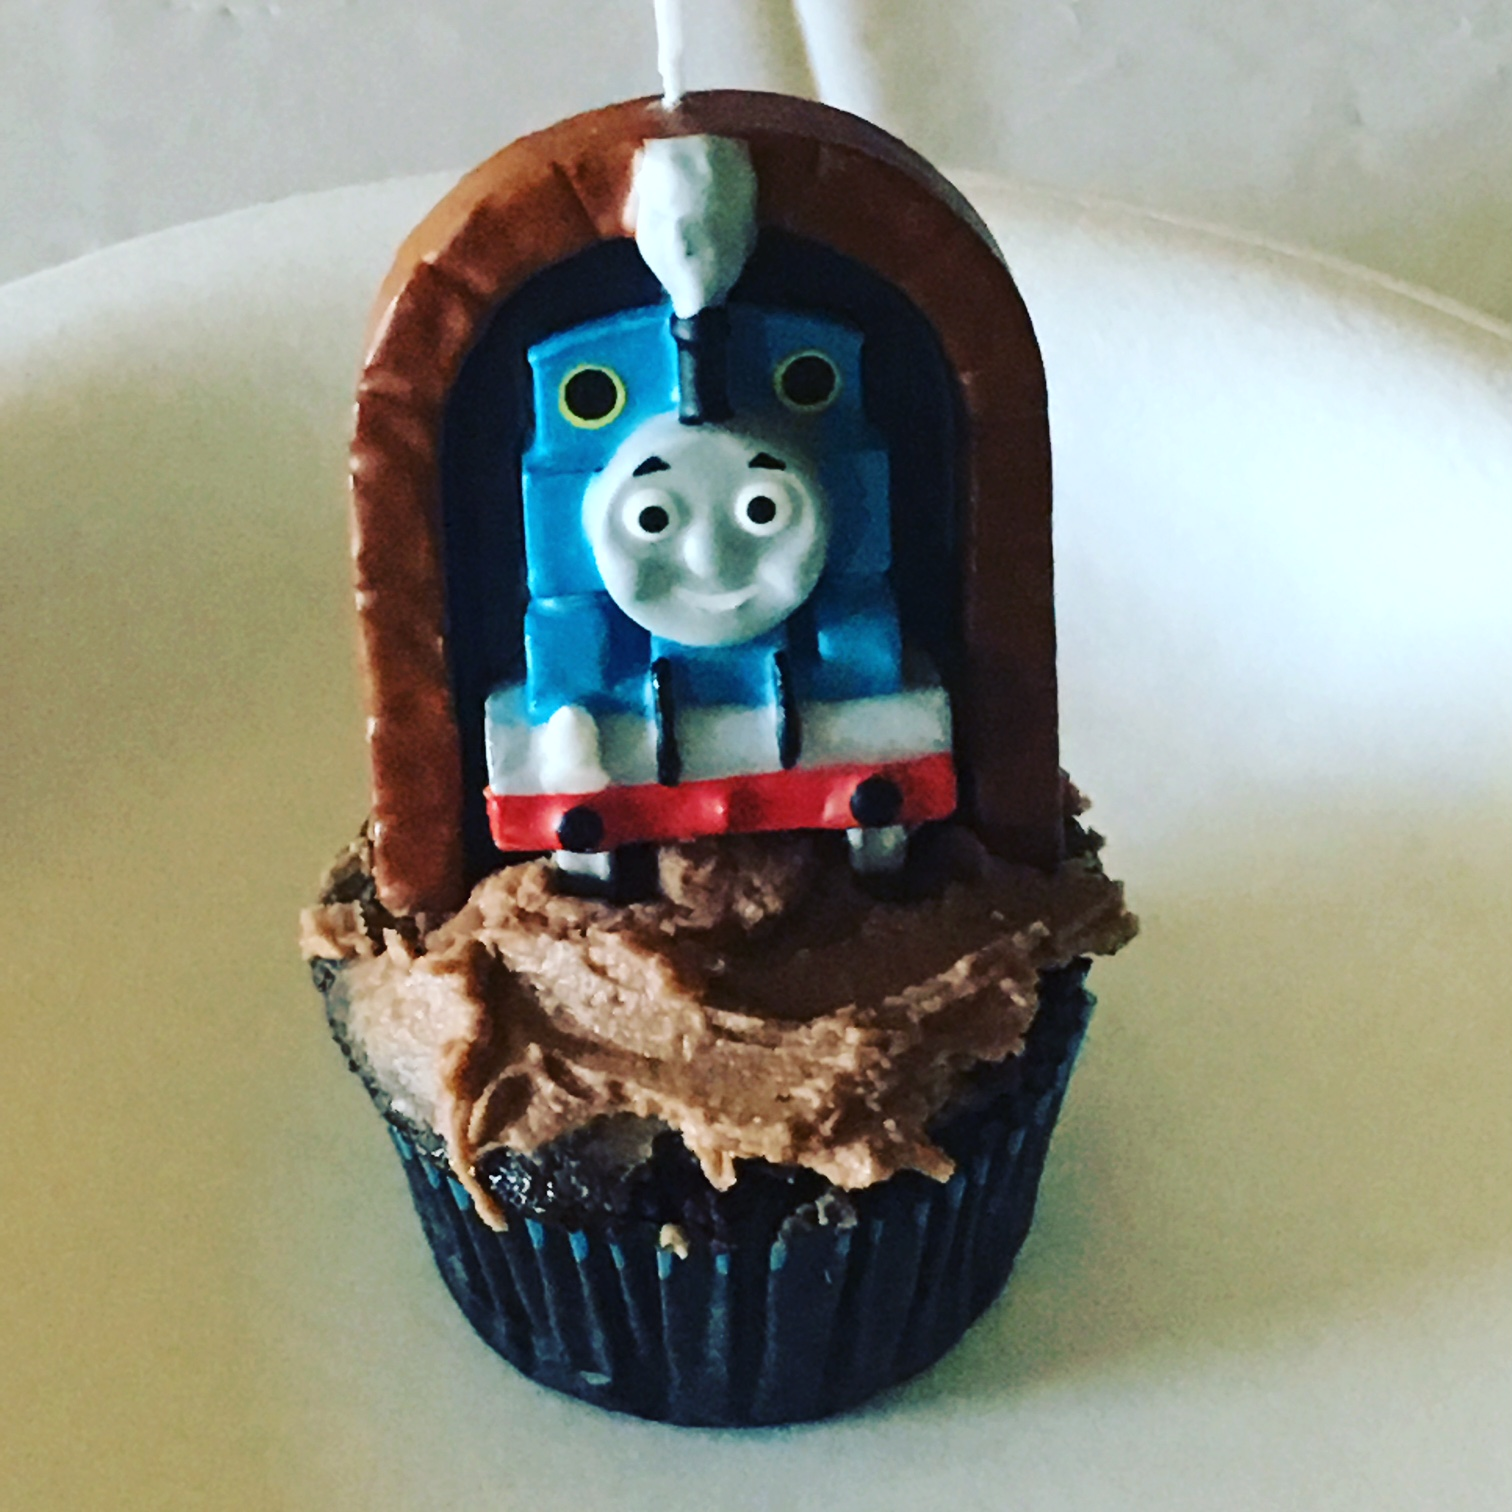 My son got a birthday cupcake complete with dairy-free frosting and, of course, the largest Thomas the Train candle I could fine.